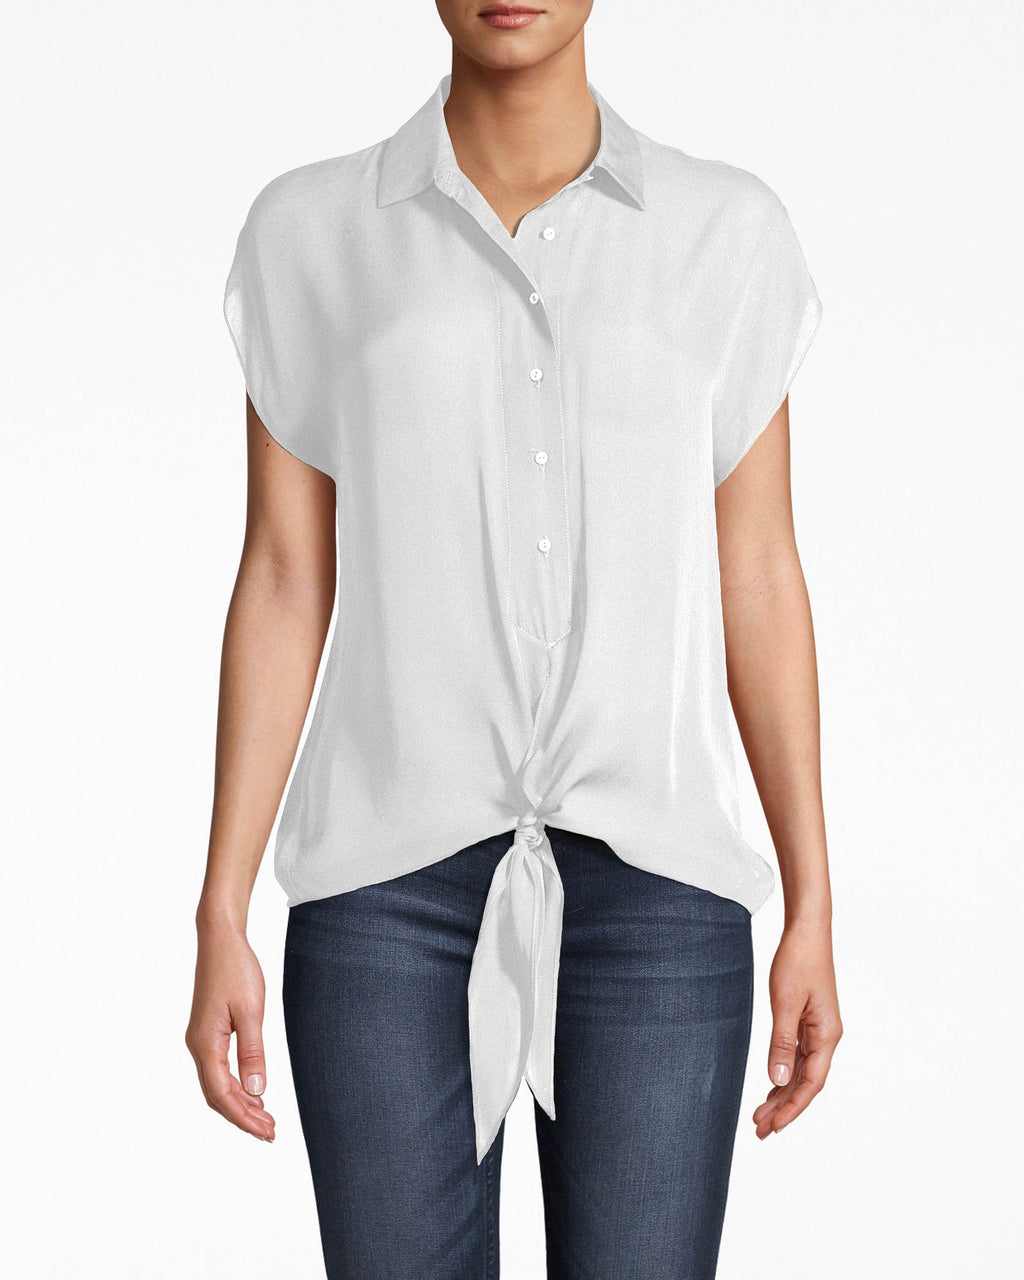 BD10211 - SILK TIE FRONT BLOUSE - tops - shirts - A CLASSIC TOP THAT ALREADY GOES WITH EVERYTHING IN YOUR CLOSET. THIS SILK TOP BUTTONS UP THE FRONT AND HAS A TIE DETAIL AT THE WAIST. LIGHTWEIGHT AND EASY TO THROW ON. Add 1 line break STYLIST TIP: WEAR WITH EVERYTHING FROM A STATEMENT BOTTOM TO PLAIN DENIM.